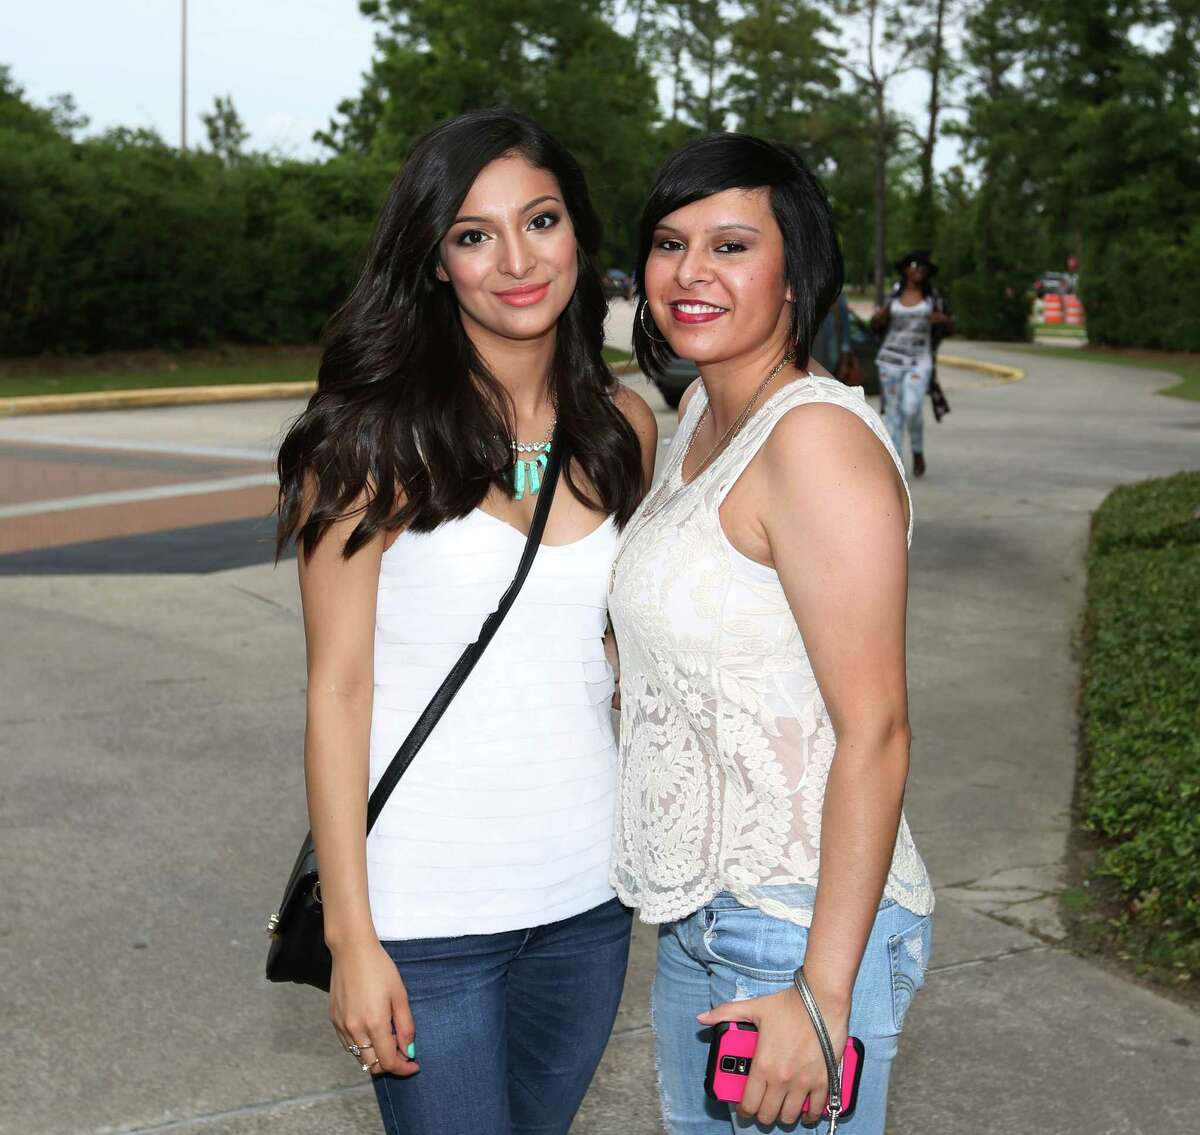 Fans at the Lana Del Rey-Courtney Love concert at the Cynthia Woods Mitchell Pavilion on May 7.